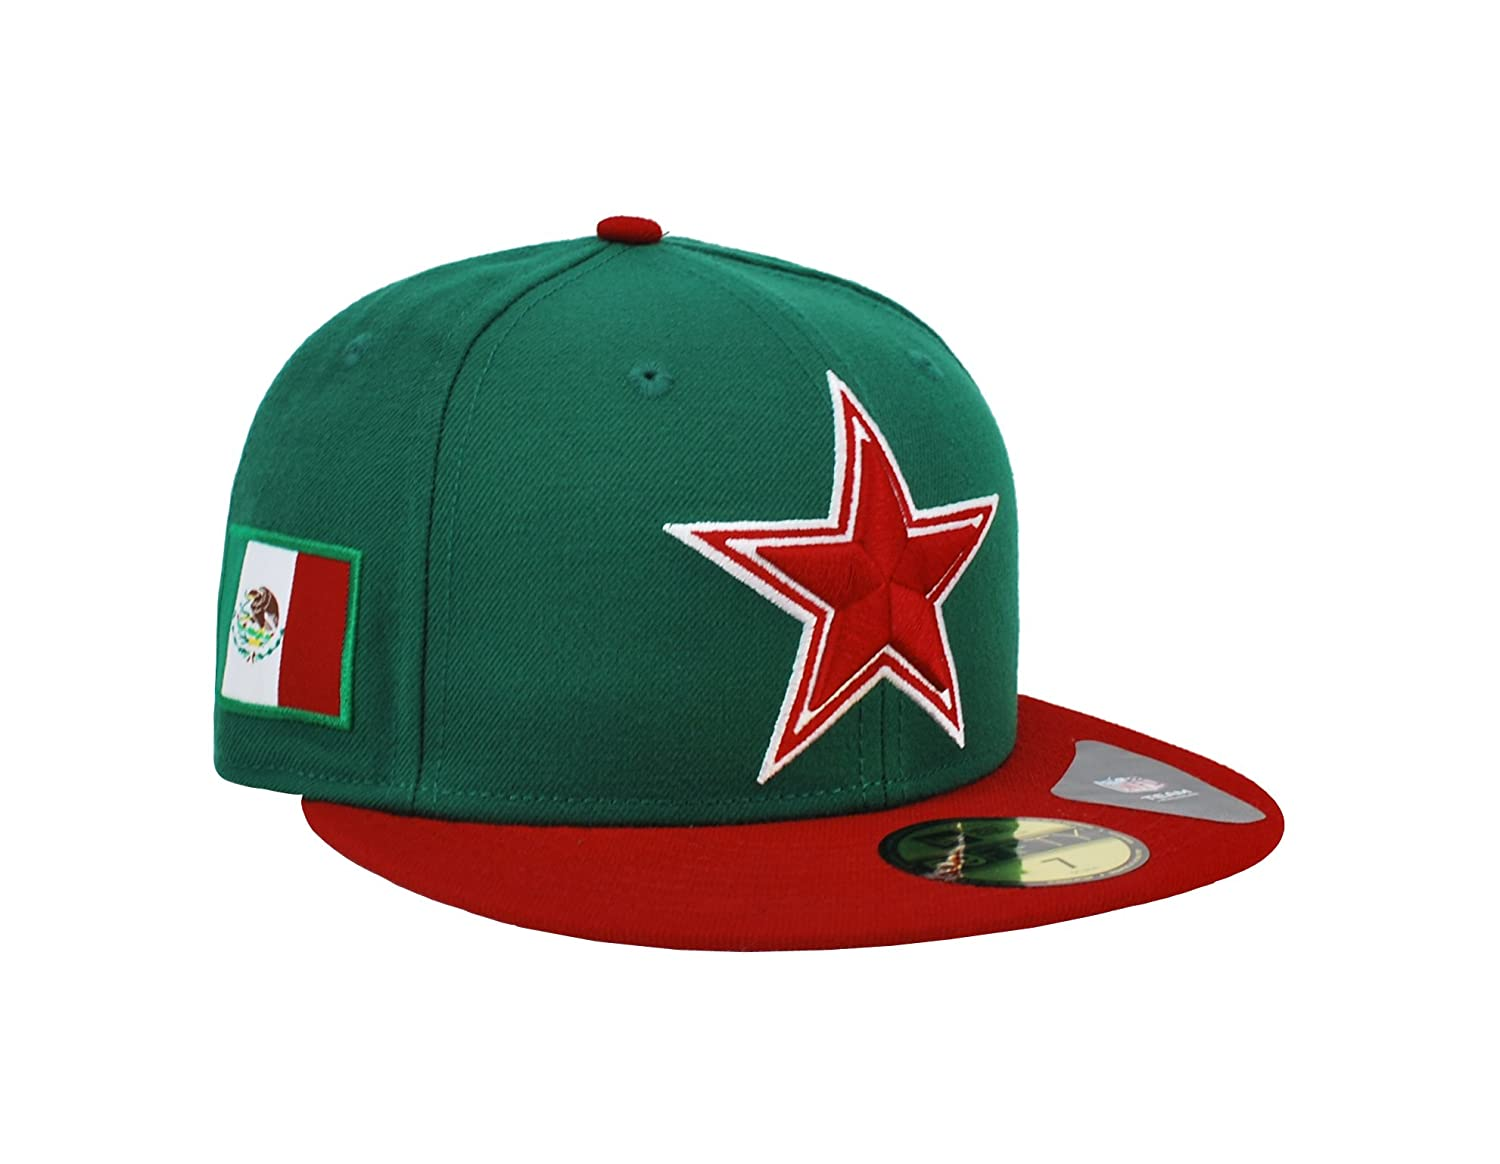 best service 1b069 1add3 Amazon.com  New Era 59Fifty Hat Dallas Cowboys Mexico Flag Edition Green  Red  Redux Fitted Cap (8)  Clothing